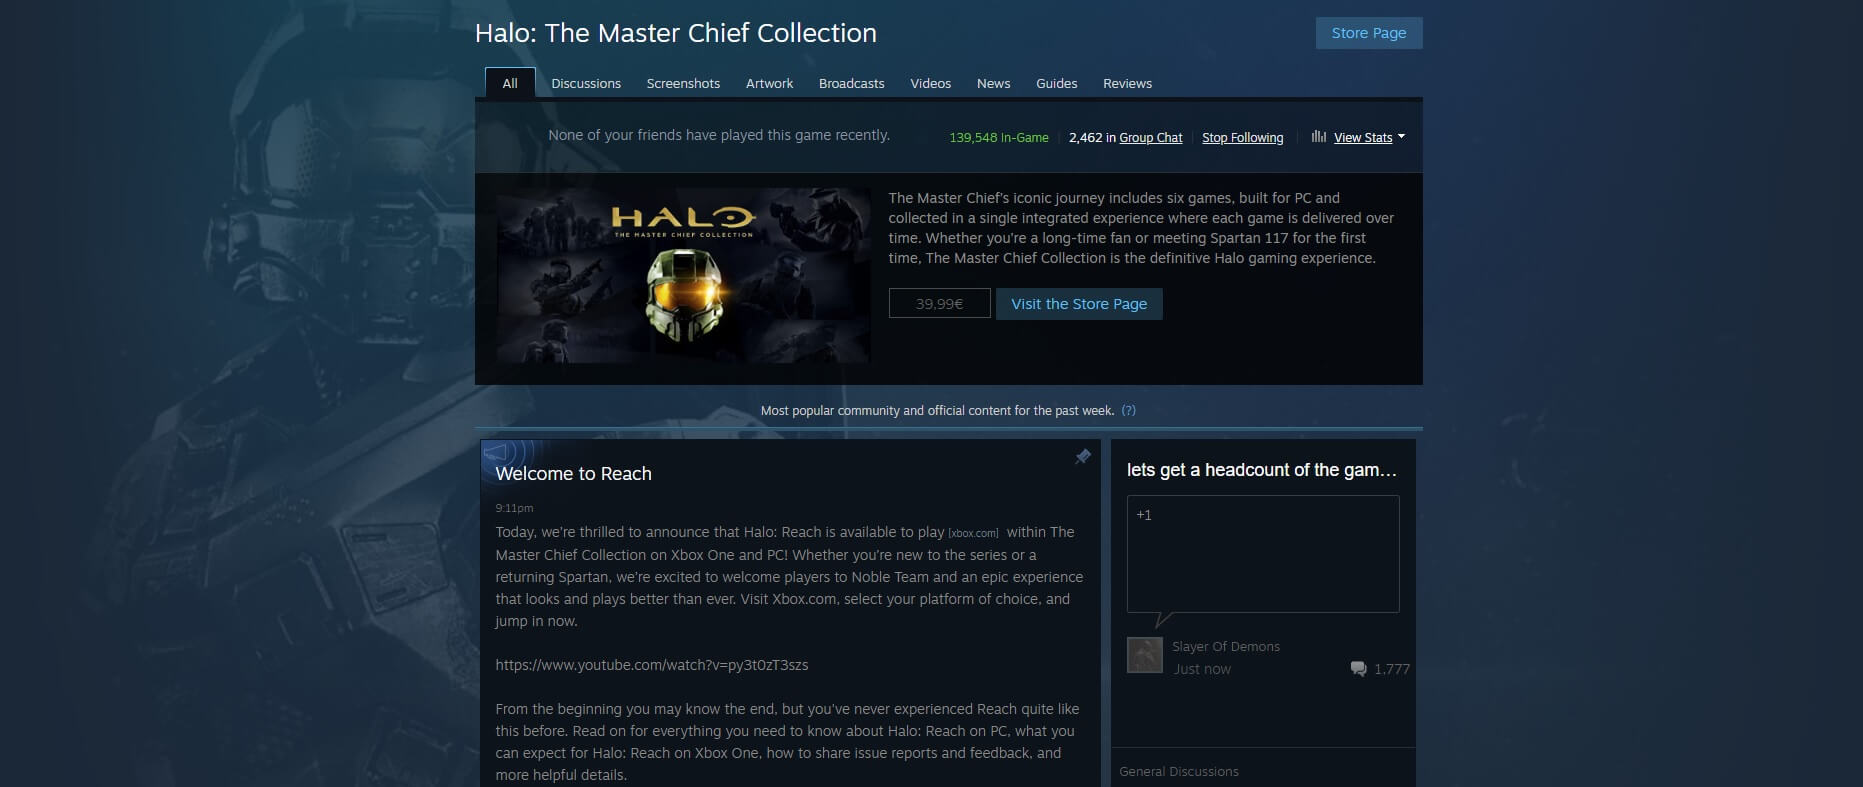 Halo The Master Chief Collection Steam Player Count